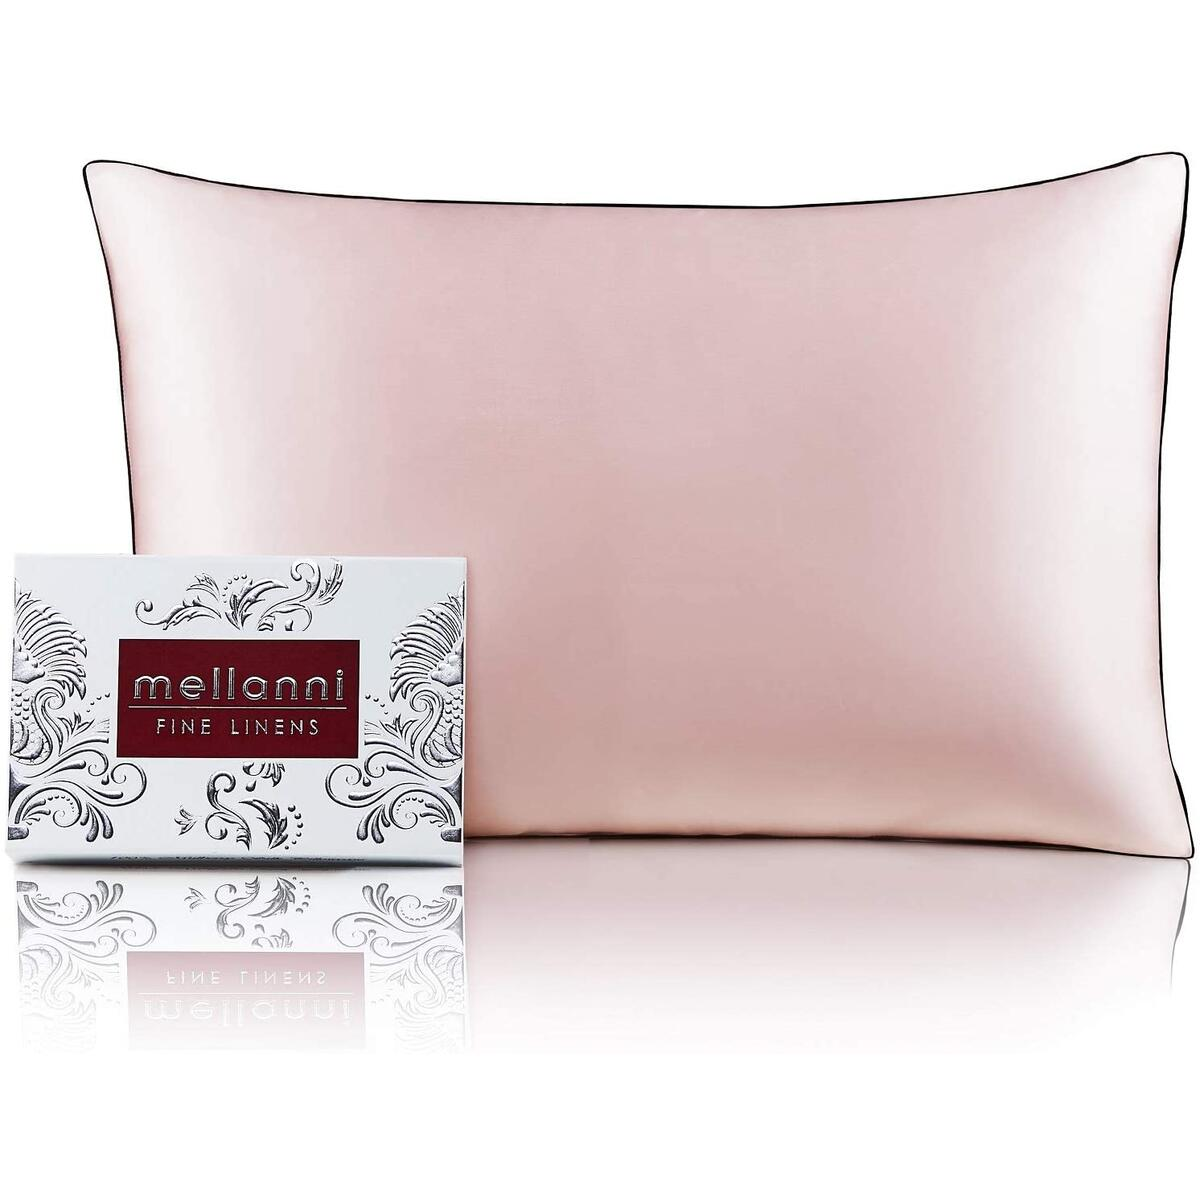 Mellanni Silk Pillowcase for Hair and Skin - Both Sides 100% Pure Natural Mulberry Silk - 19 Momme - Hidden Zipper Closure Pillow Case - (Queen 20